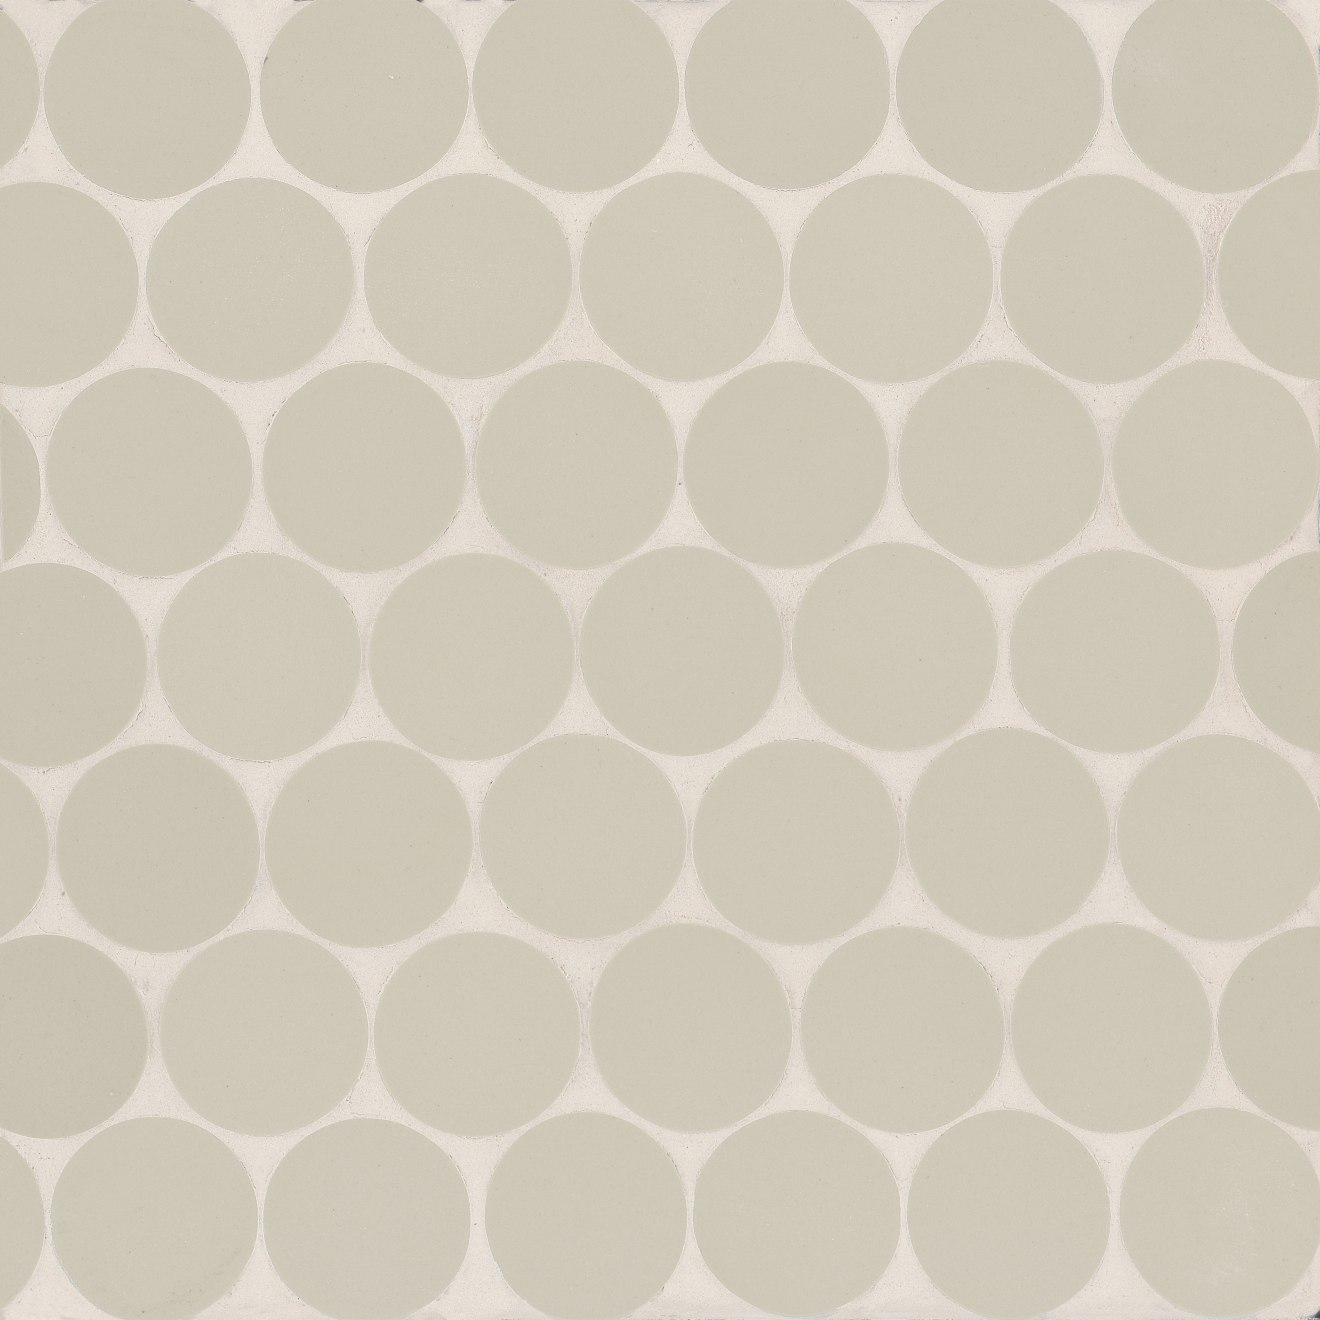 "Makoto 2"" Round Matte Porcelain Floor and Wall Mosaic in Kumo Grey"